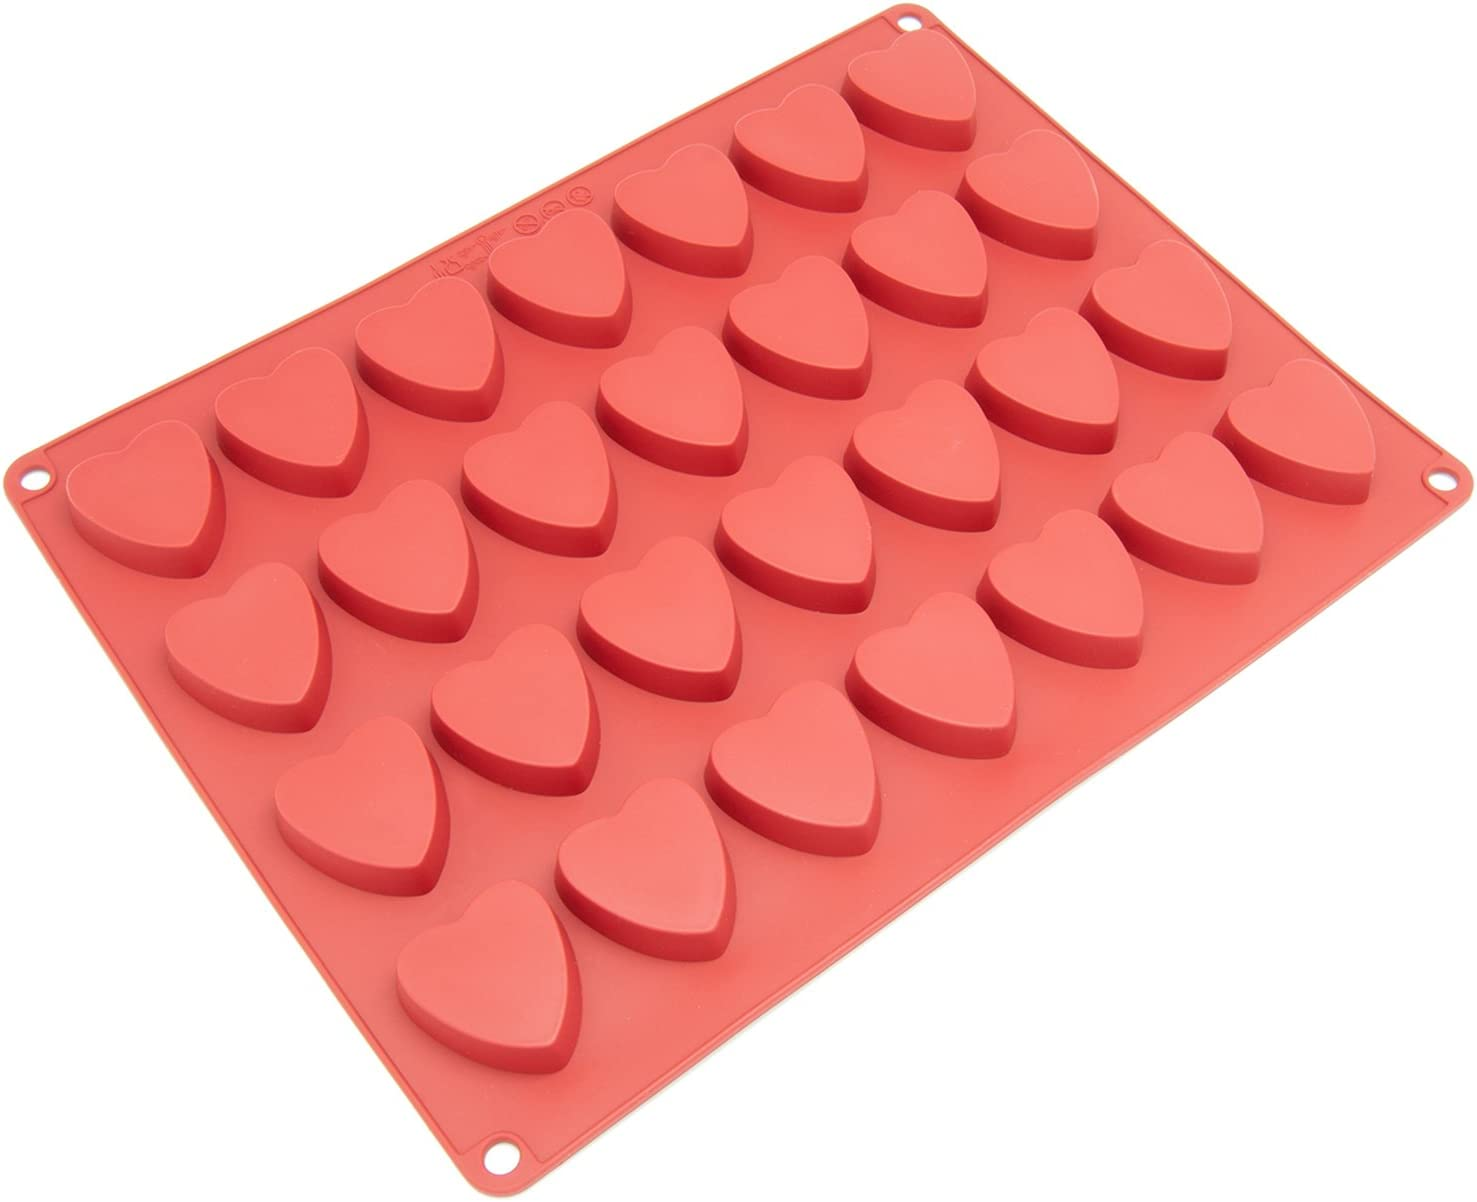 Silicone Chocolate Candy Molds [Heart, 28 Cup] - Non Stick, BPA Free, Reusable 100% Silicon & Dishwasher Safe Silicon - Kitchen Rubber Tray For Ice, Crayons, Fat Bombs and Soap Molds